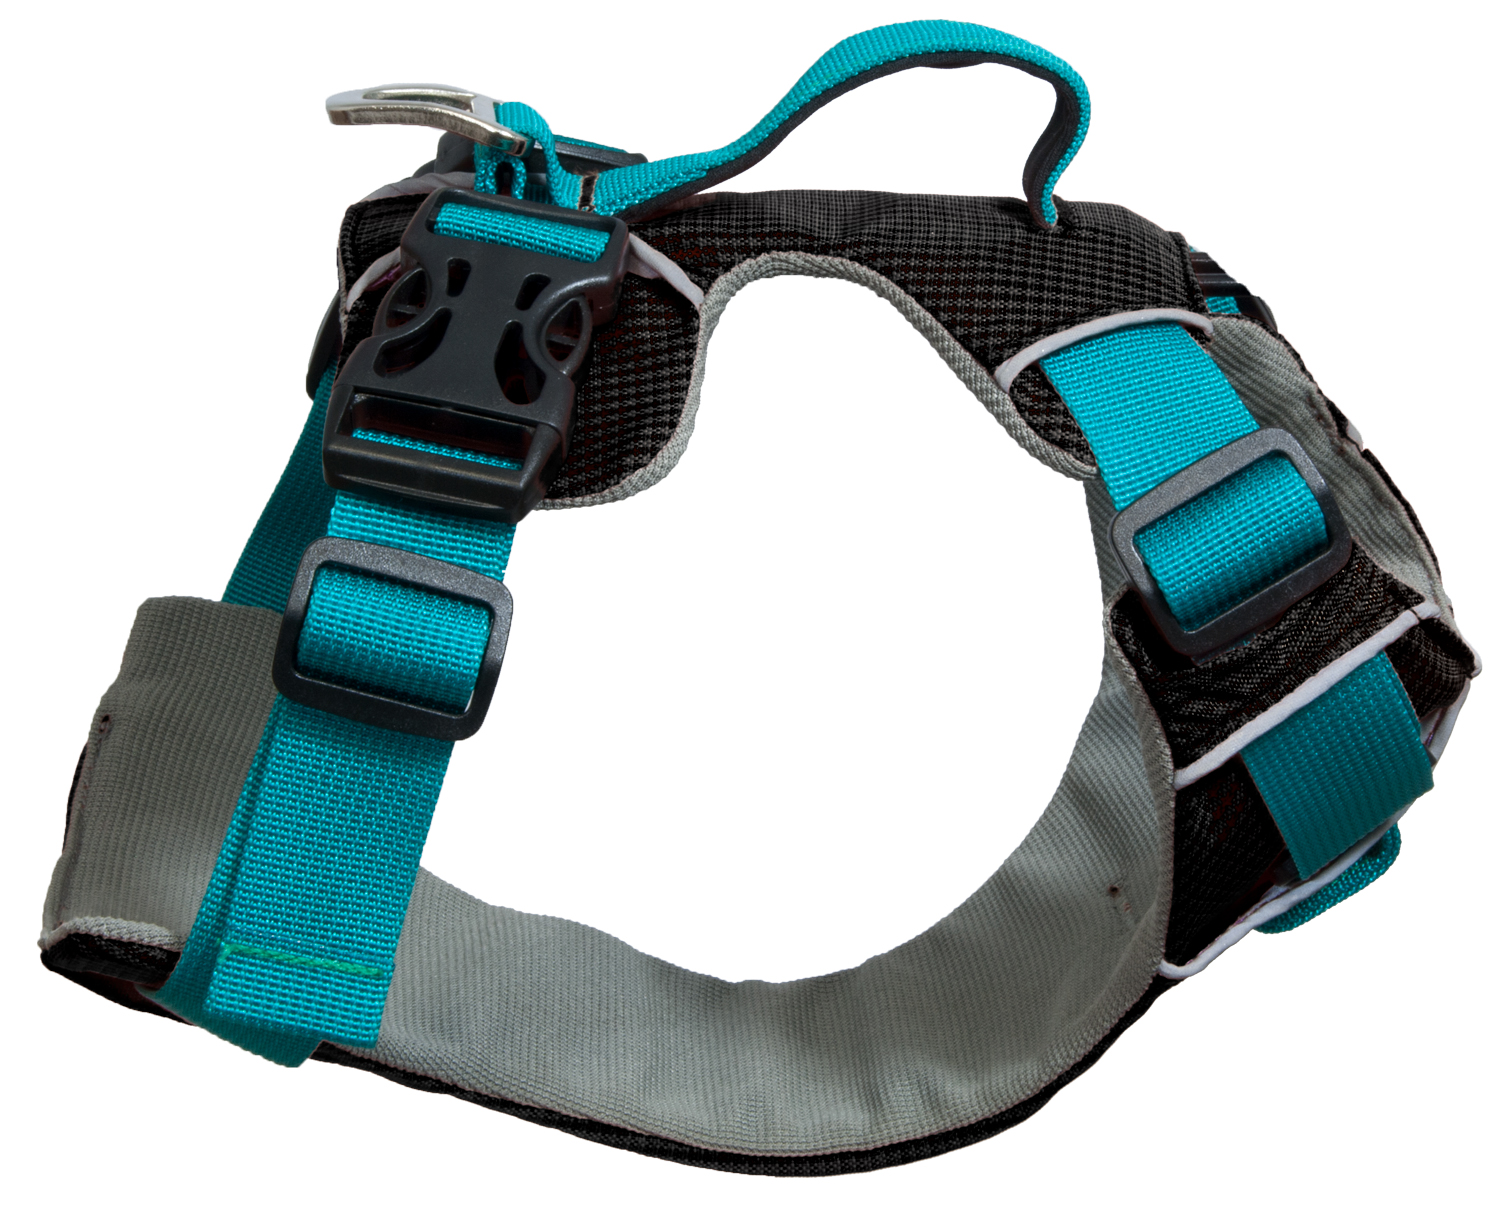 Sötnos Walking Travel & Safety Harness **Was £24.95 Now £18.95**